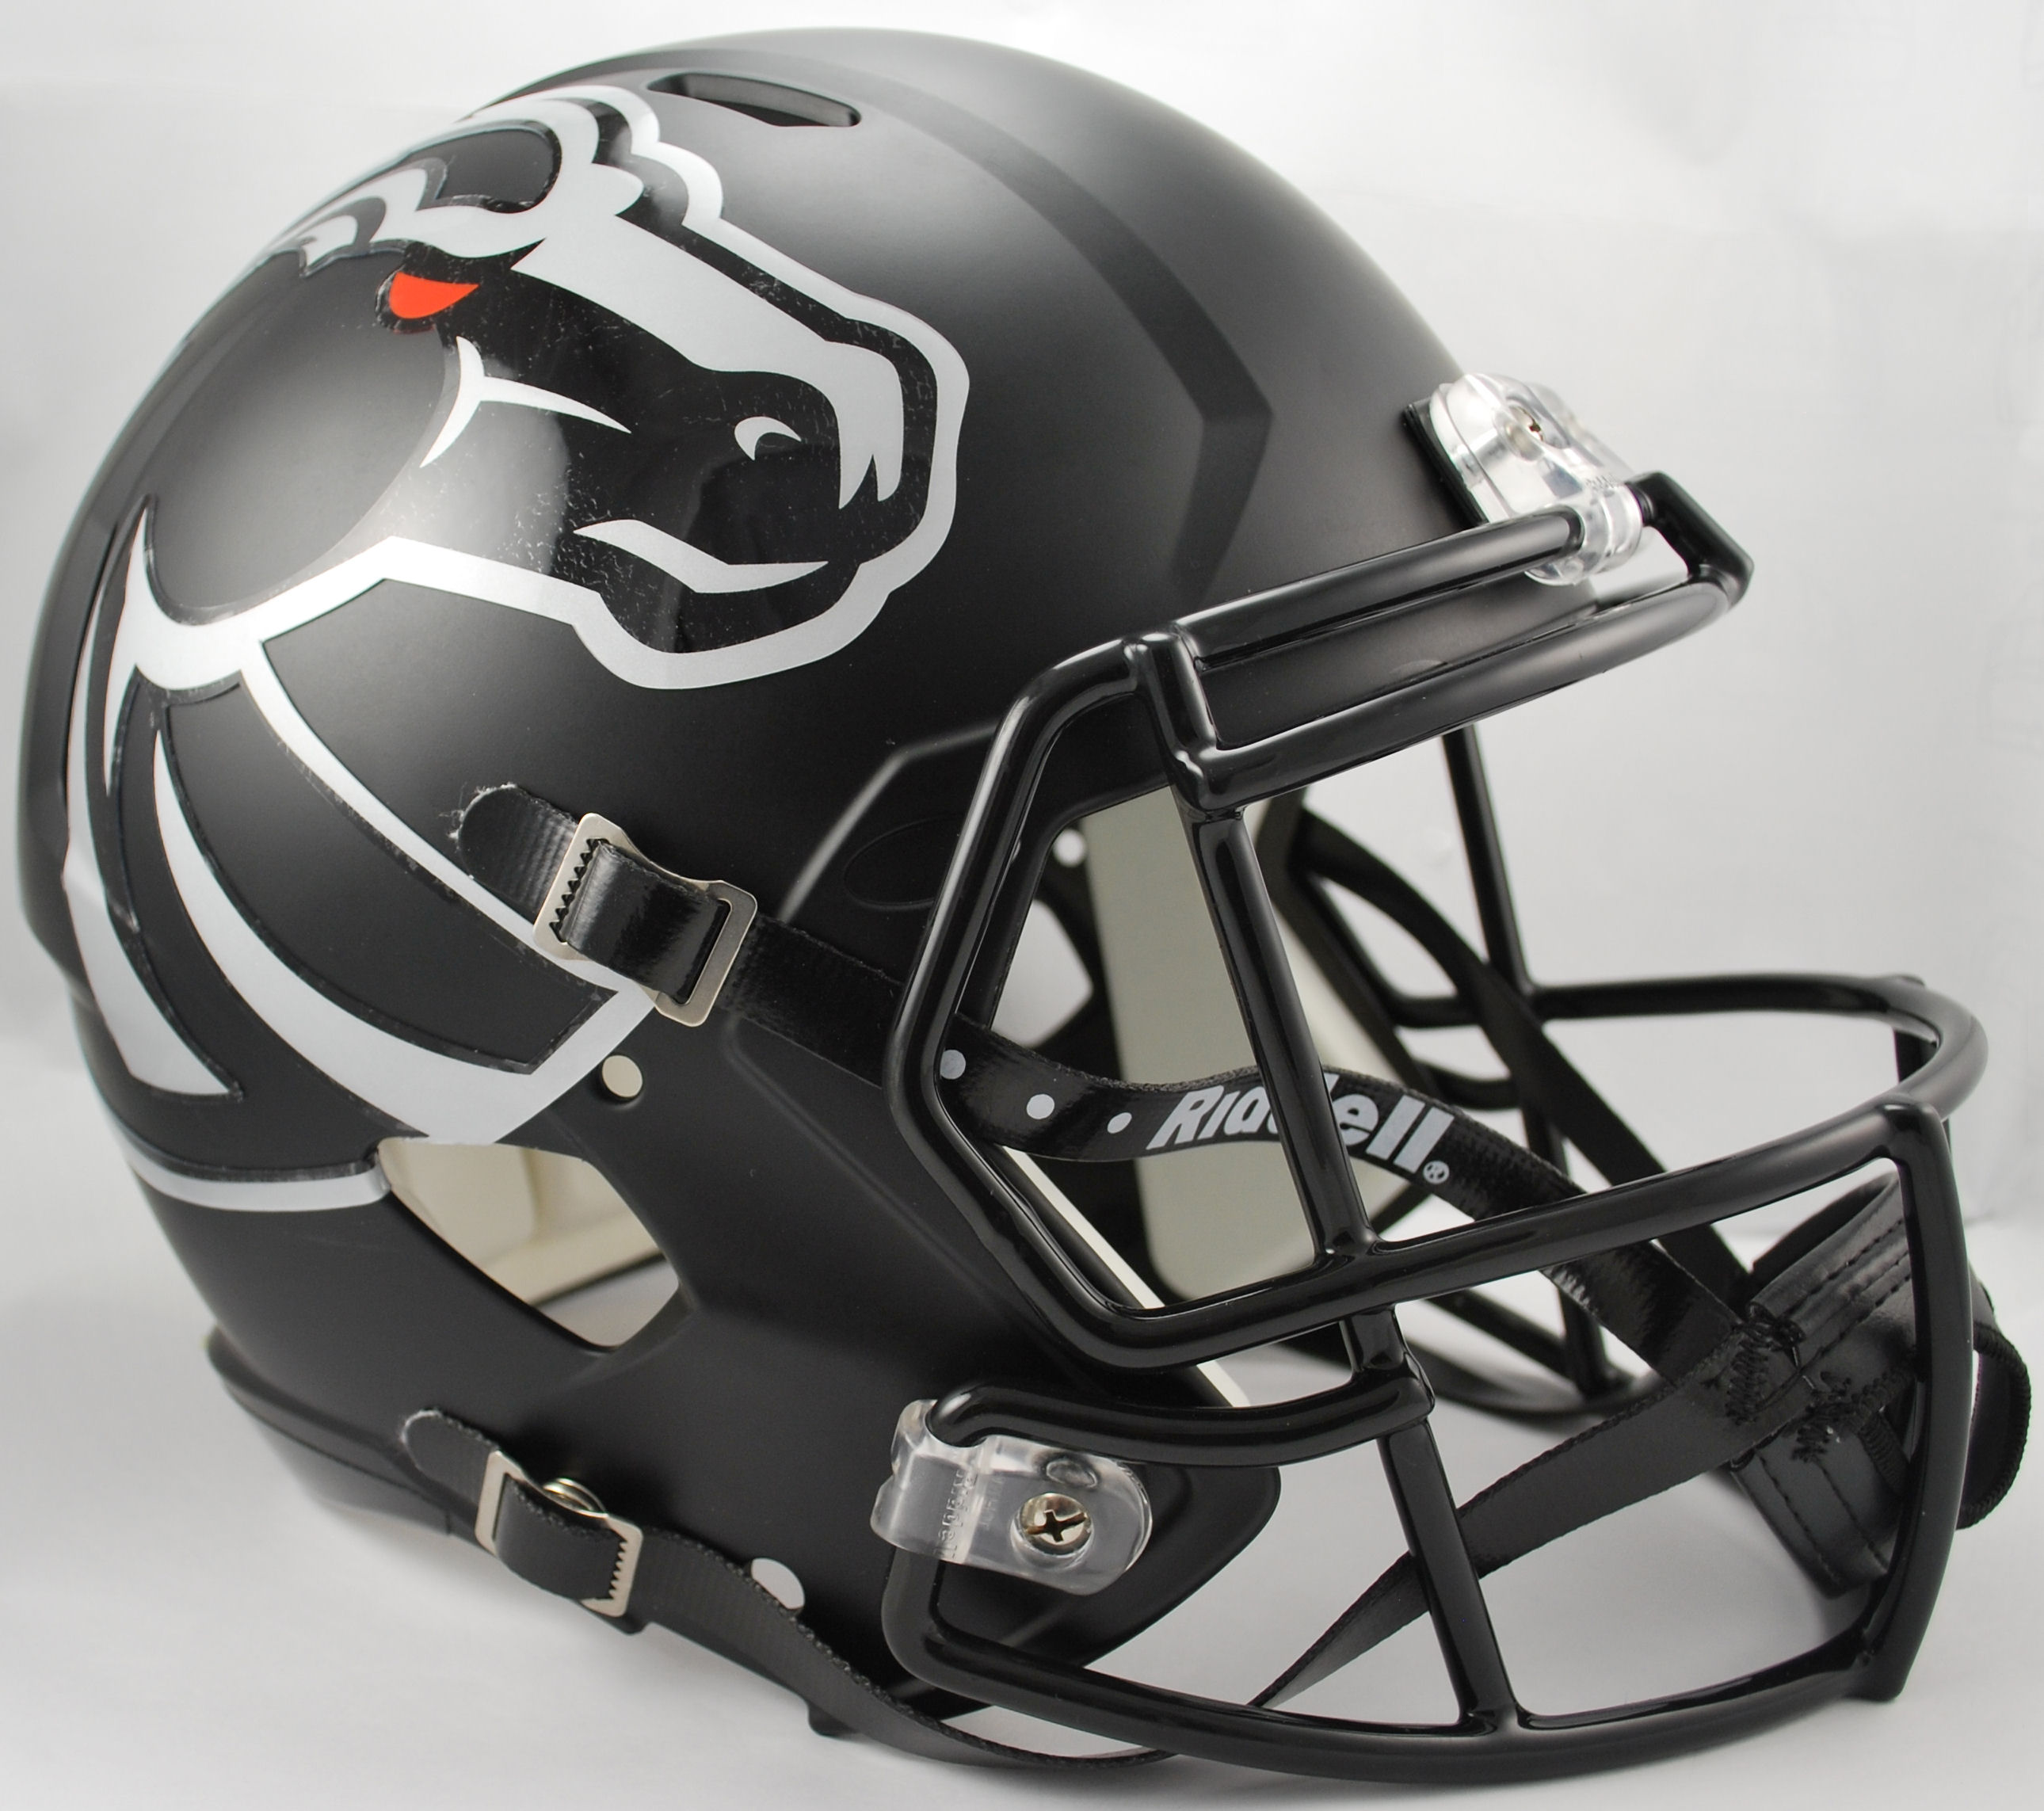 Boise State Broncos Speed Replica Football Helmet <B>Matte Black</B>